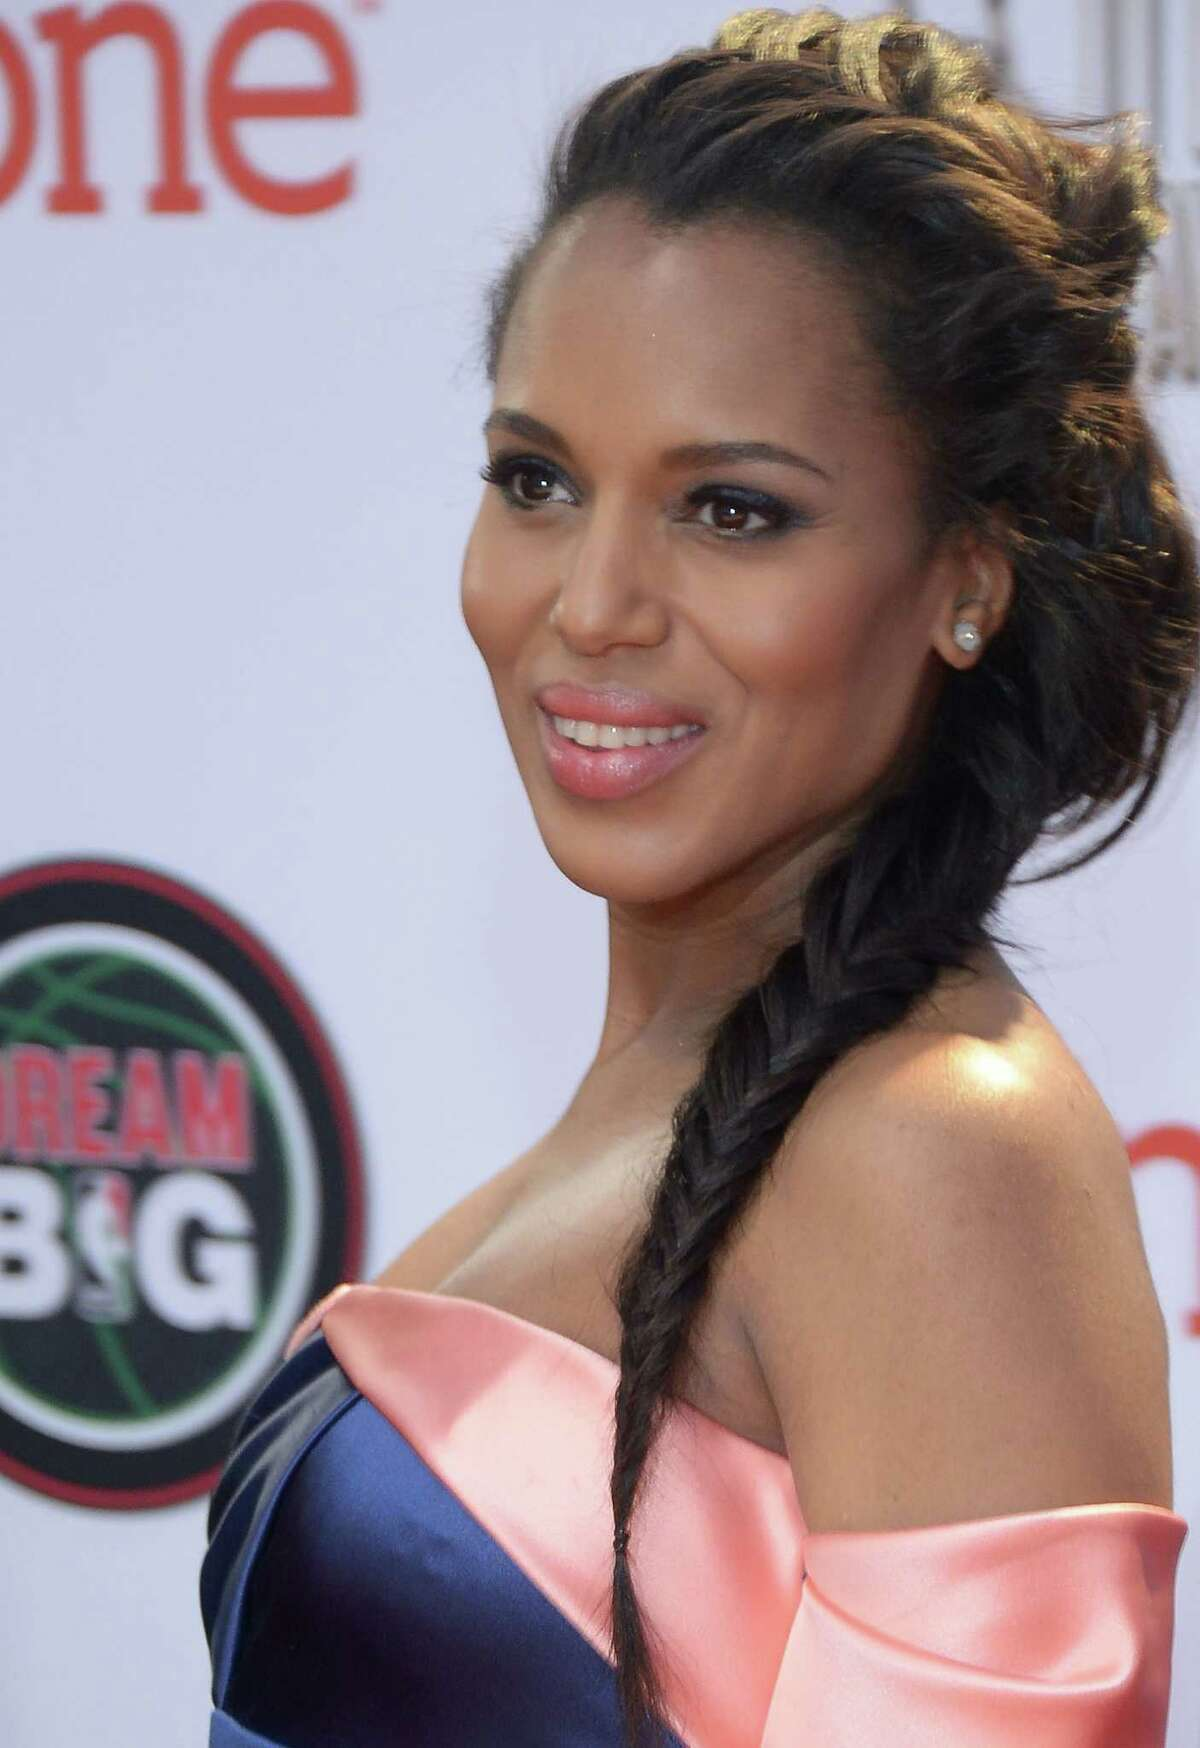 Kerry Washington A dress with a major off-the-shoulder neckline deserves to be seen. Throw a fishtail braid over one shoulder to showcase hair's length and your pretty collarbone. Read: 9 essentials for a beauty emergency kit